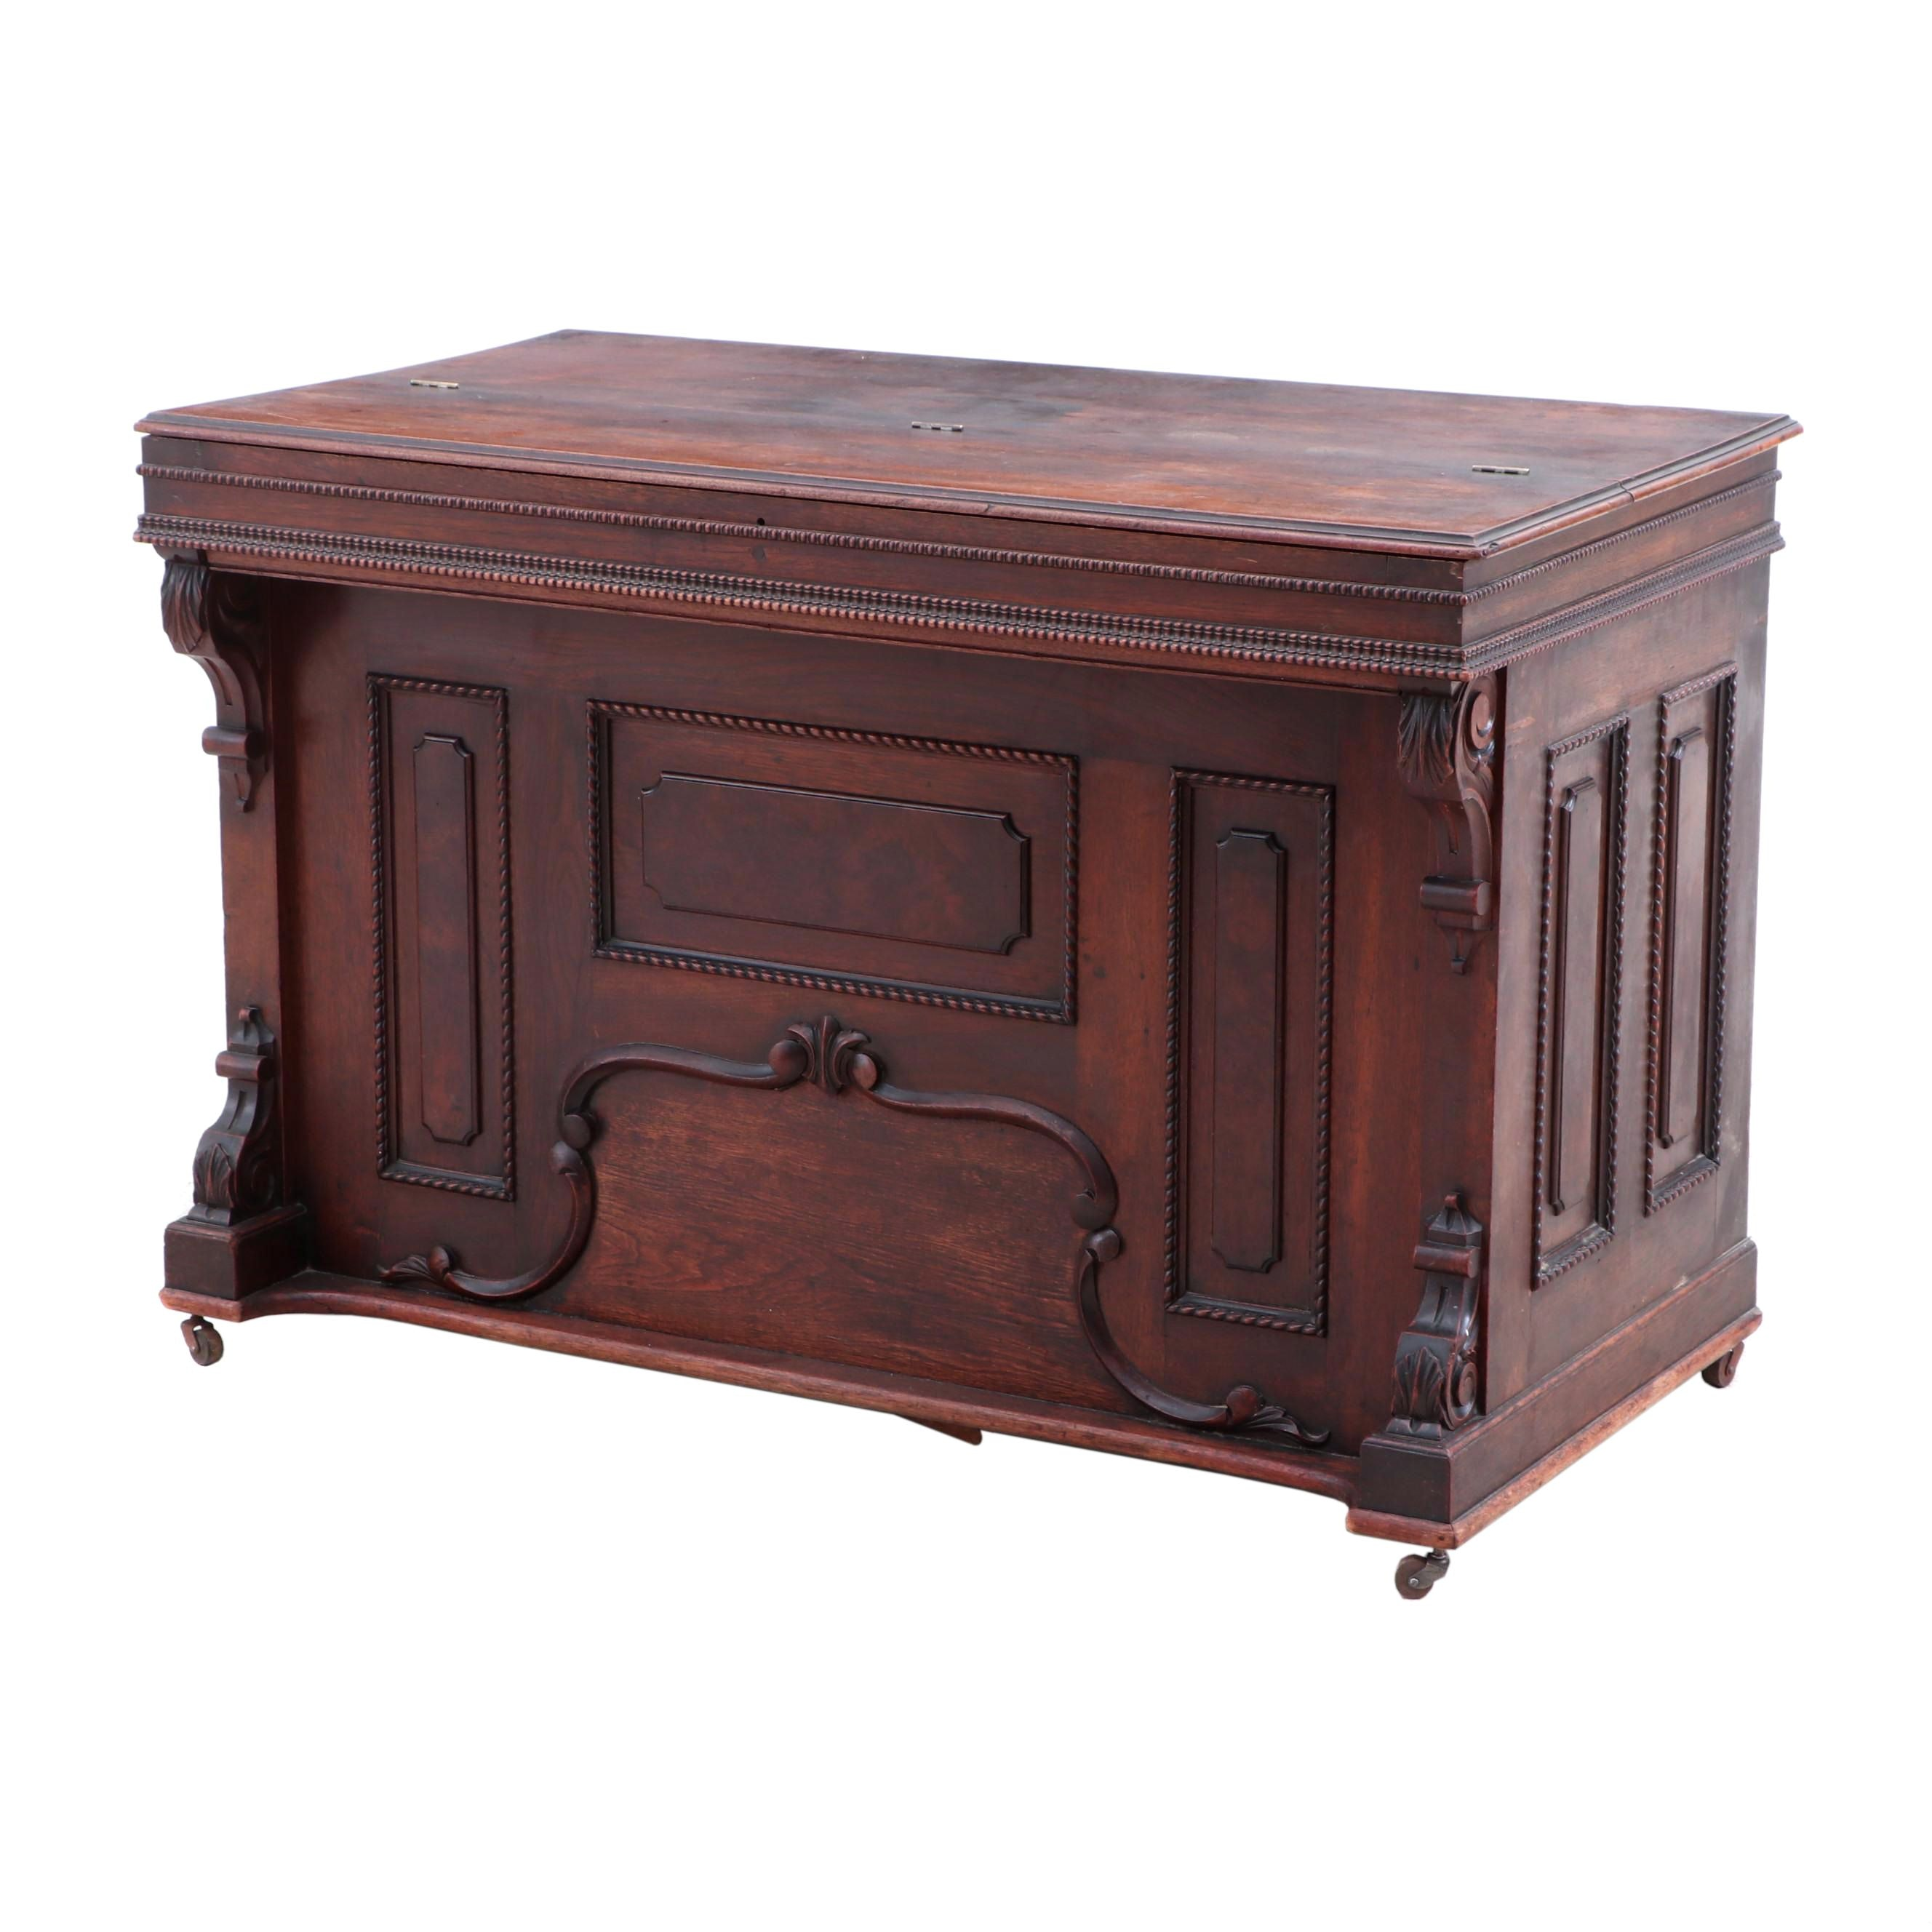 Early Victorian Walnut Storage Chest with Tray, 19th Century